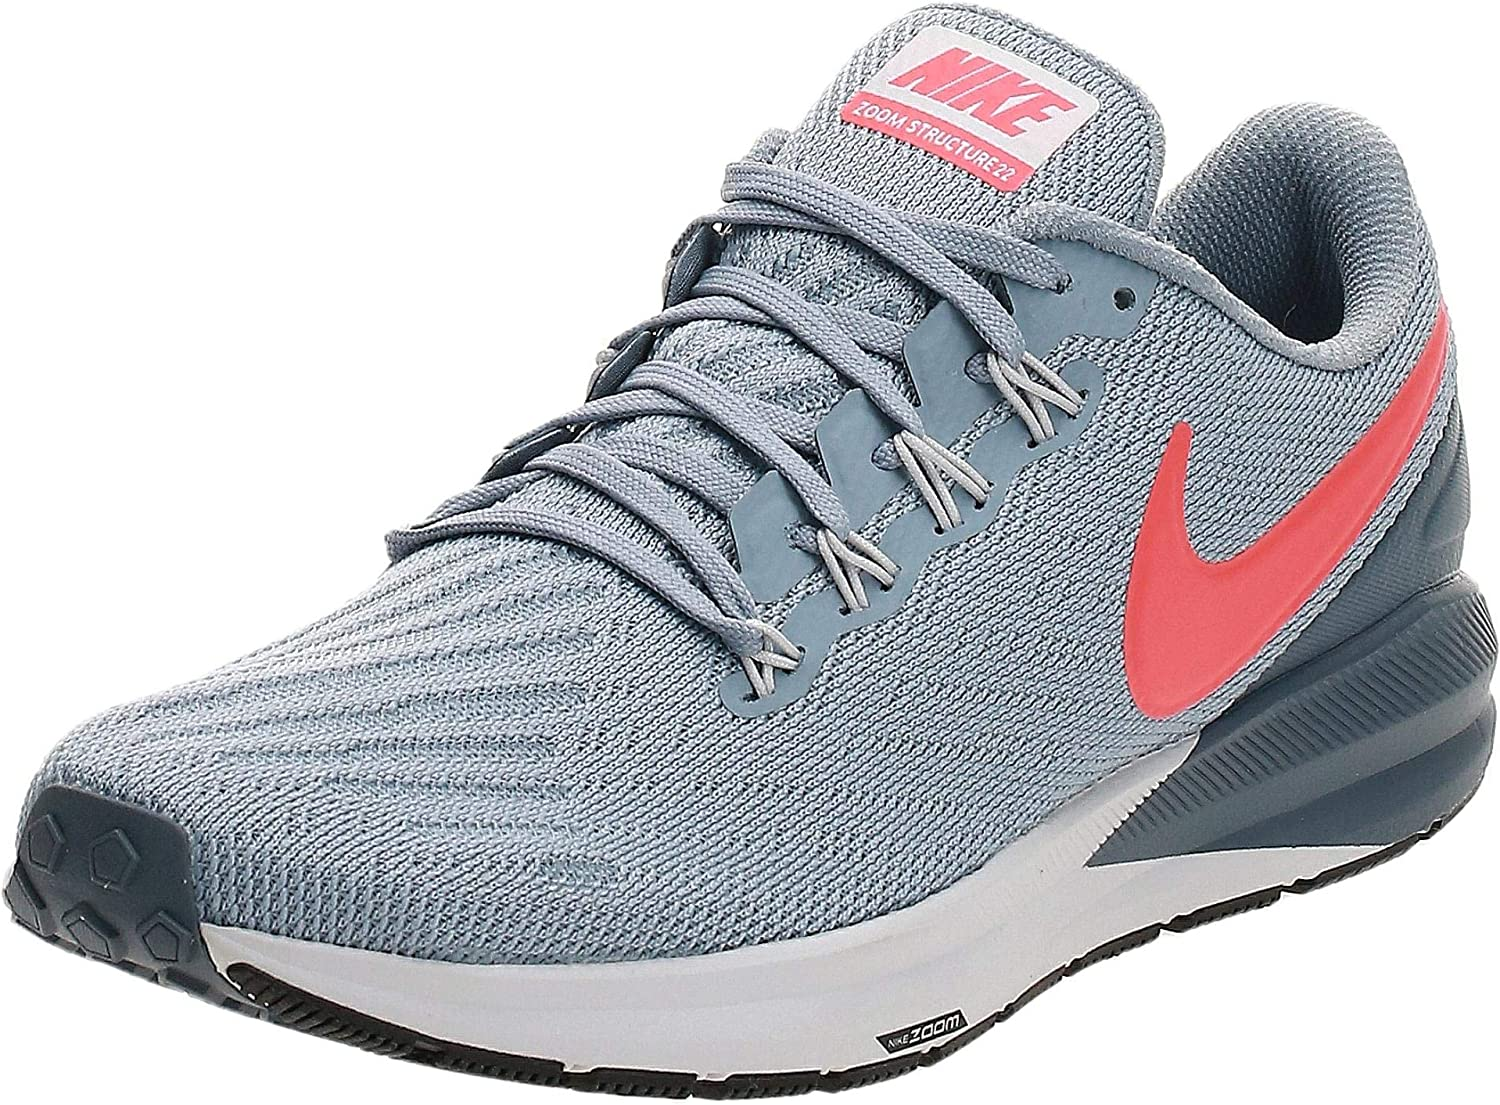 Men's Nike Air Zoom Structure 17